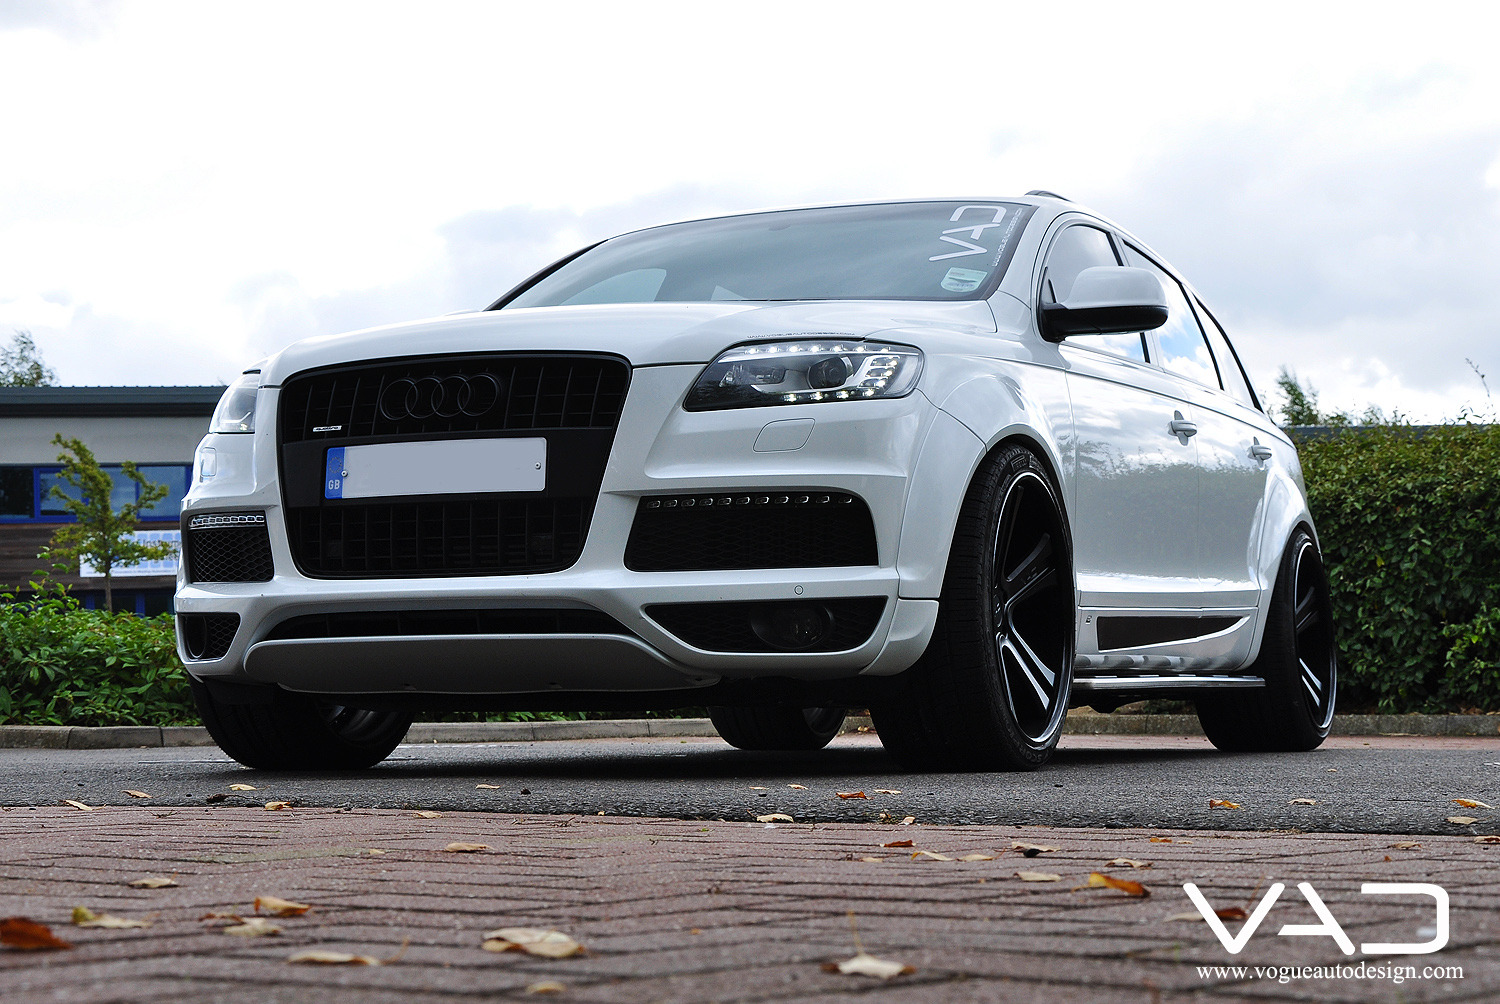 Audi Q7 ABT AS7 Wide Body